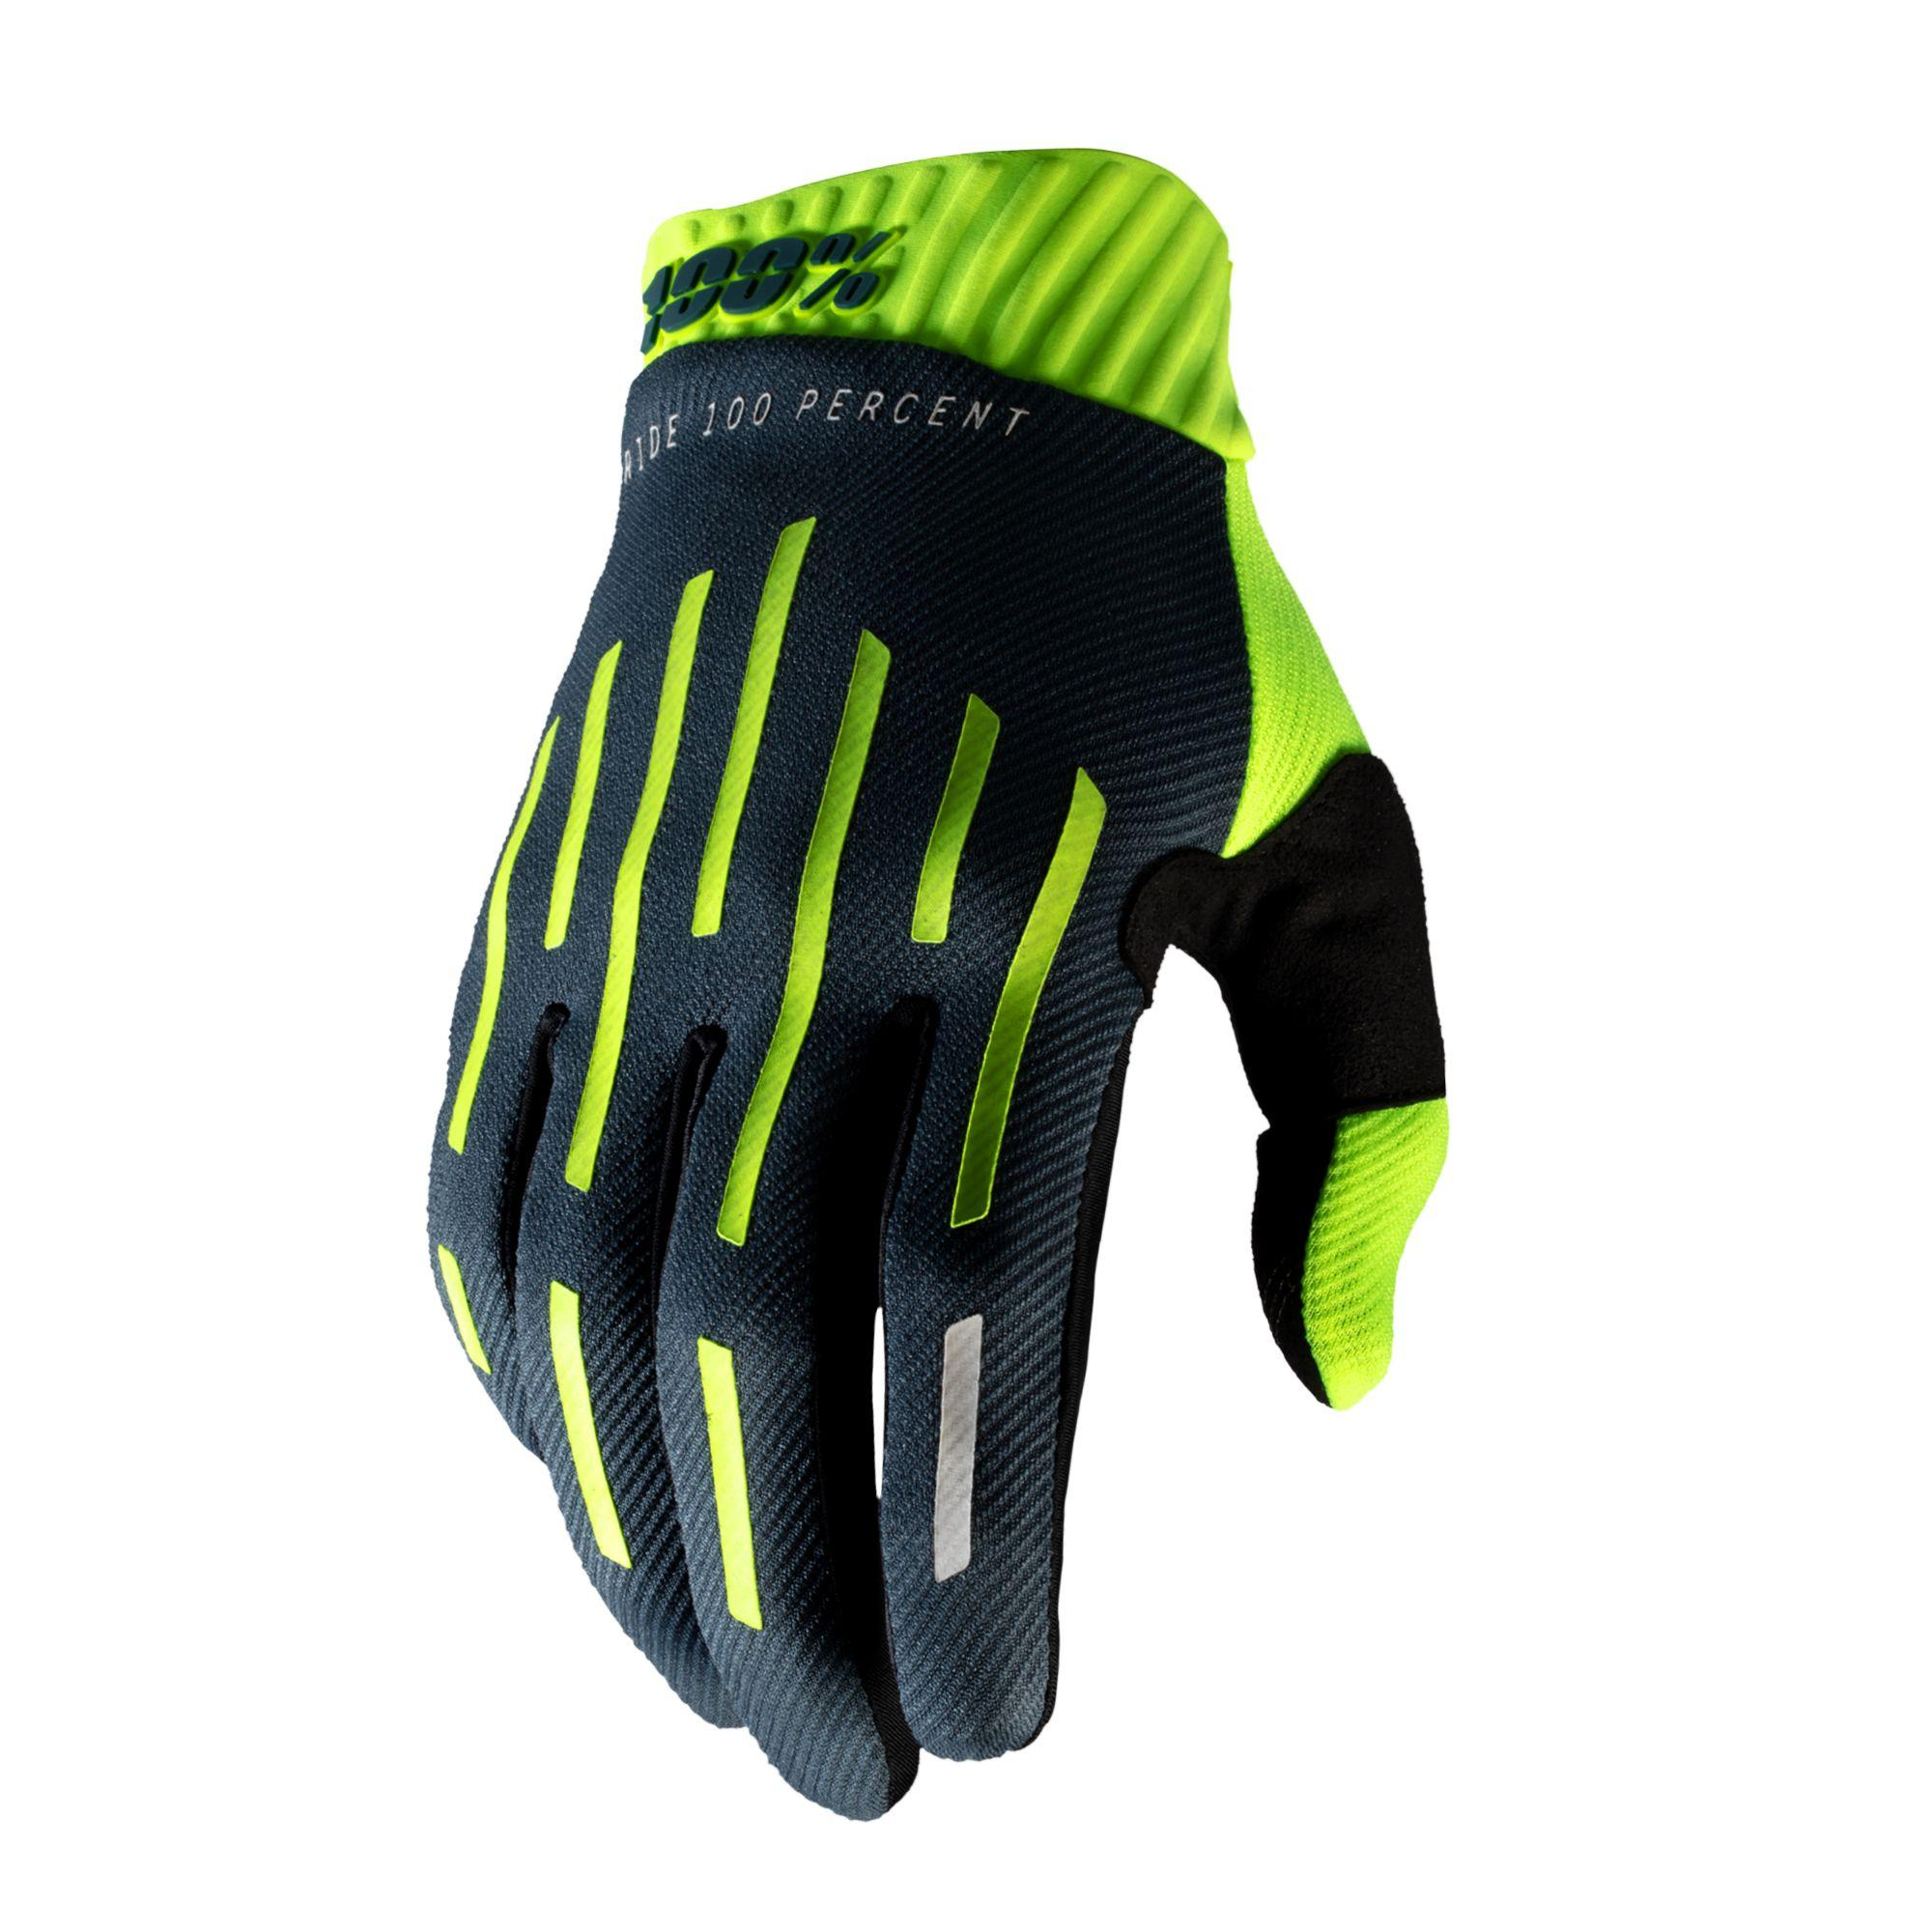 RIDEFIT Glove Fluo Yellow/Charcoal